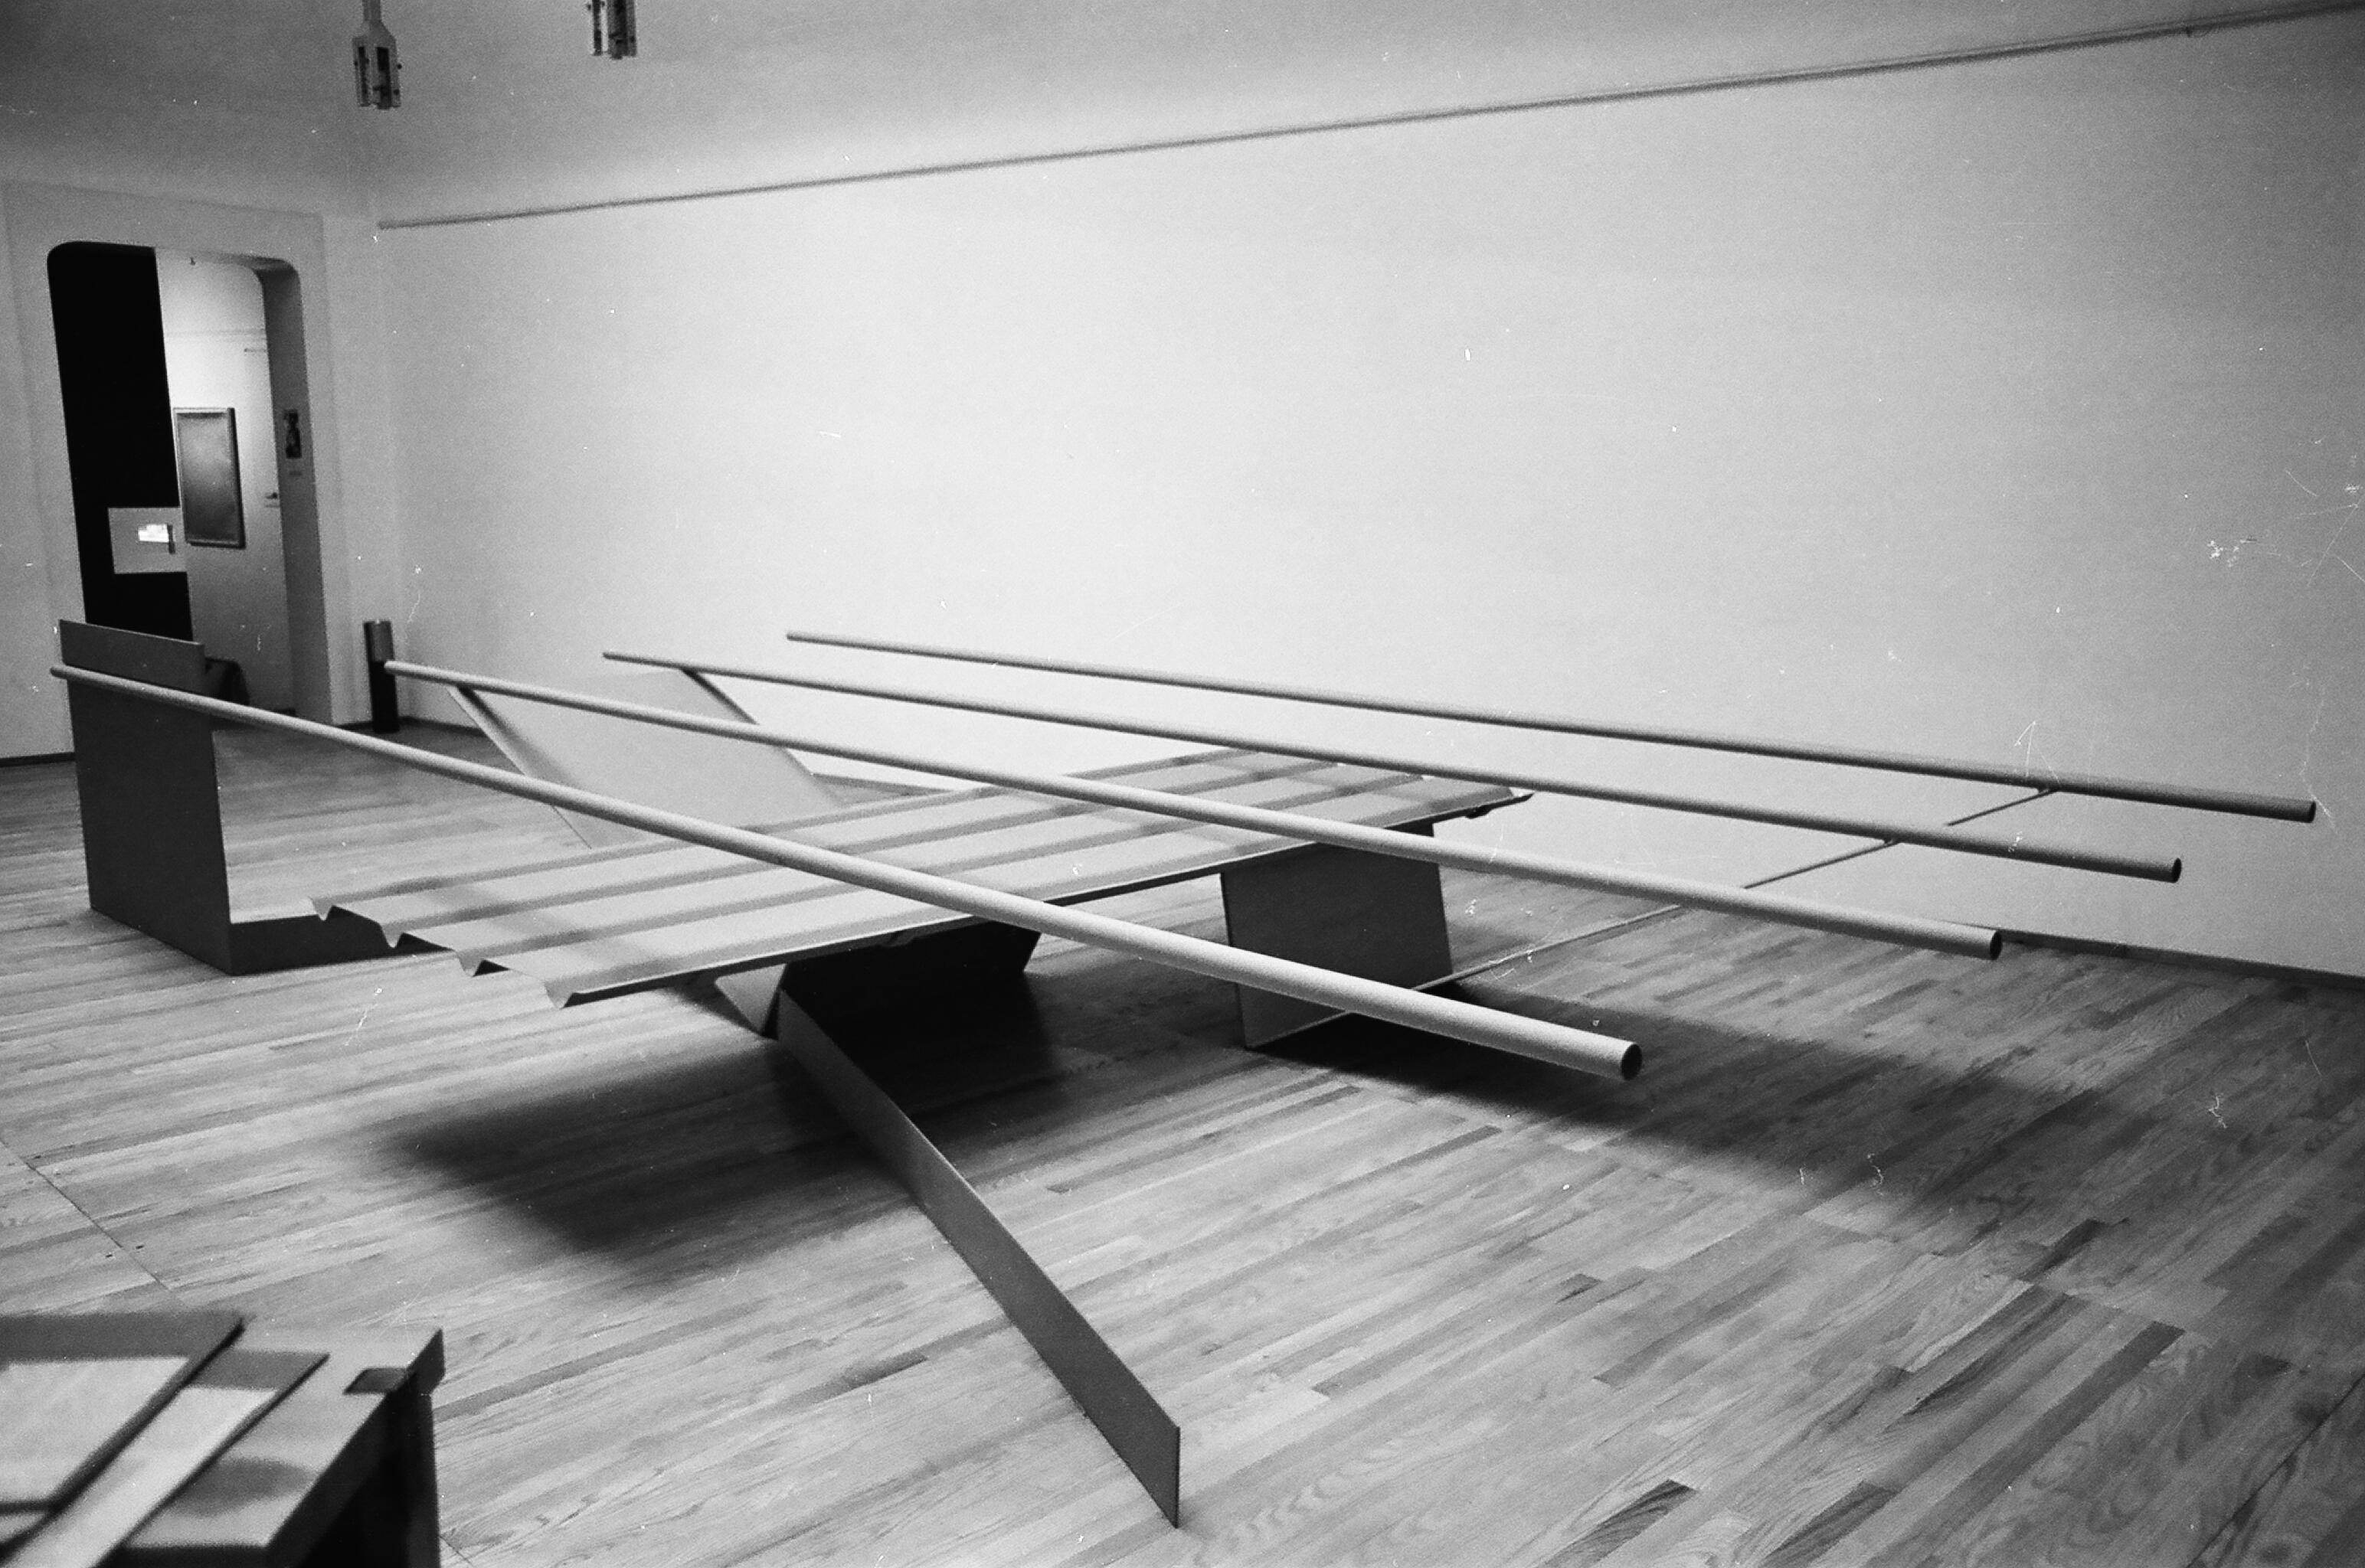 1967, installed in the <i>Recent Sculpture</i> exhibition at Kasmin Gallery, London, 1967 (the sculpture's first ever exhibition)